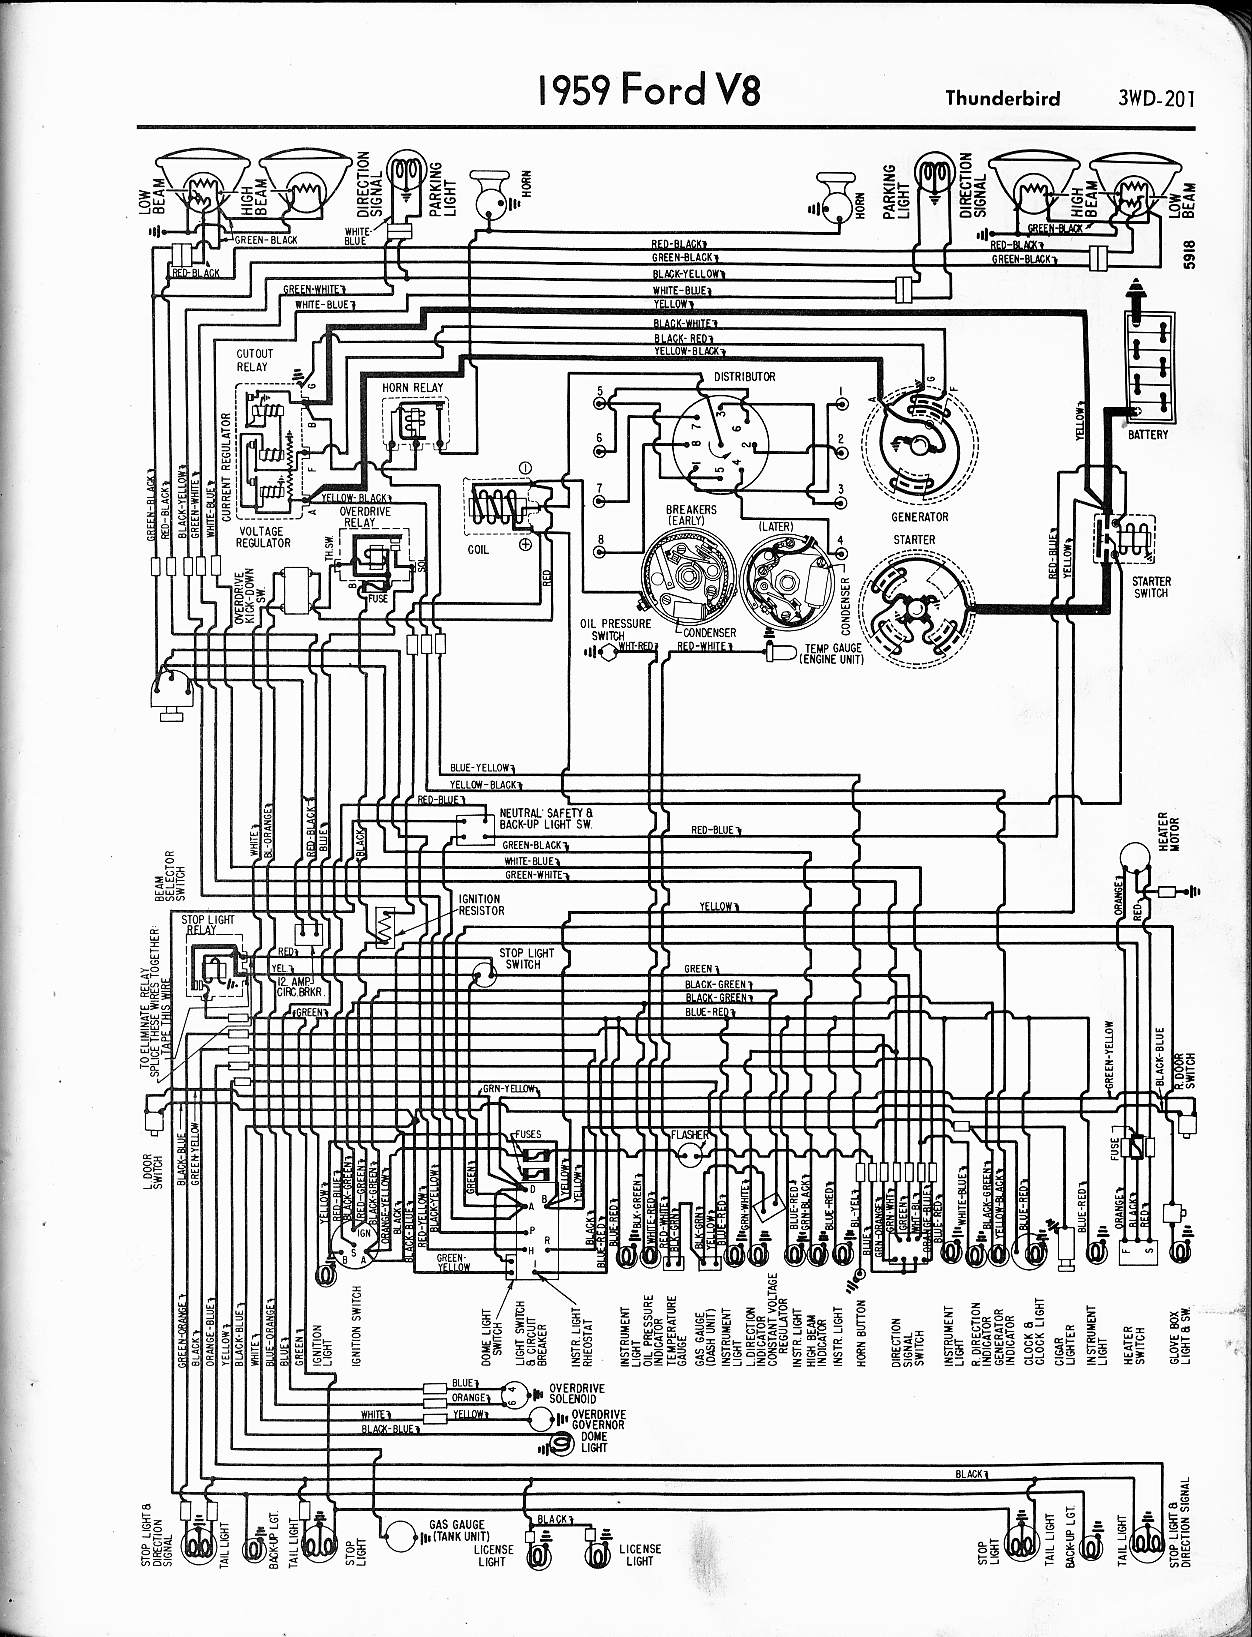 1958 Corvette Wiring Diagram Temp Anything Diagrams 1959 Cadillac Harness 57 65 Ford Rh Oldcarmanualproject Com 1957 With Fi 1981